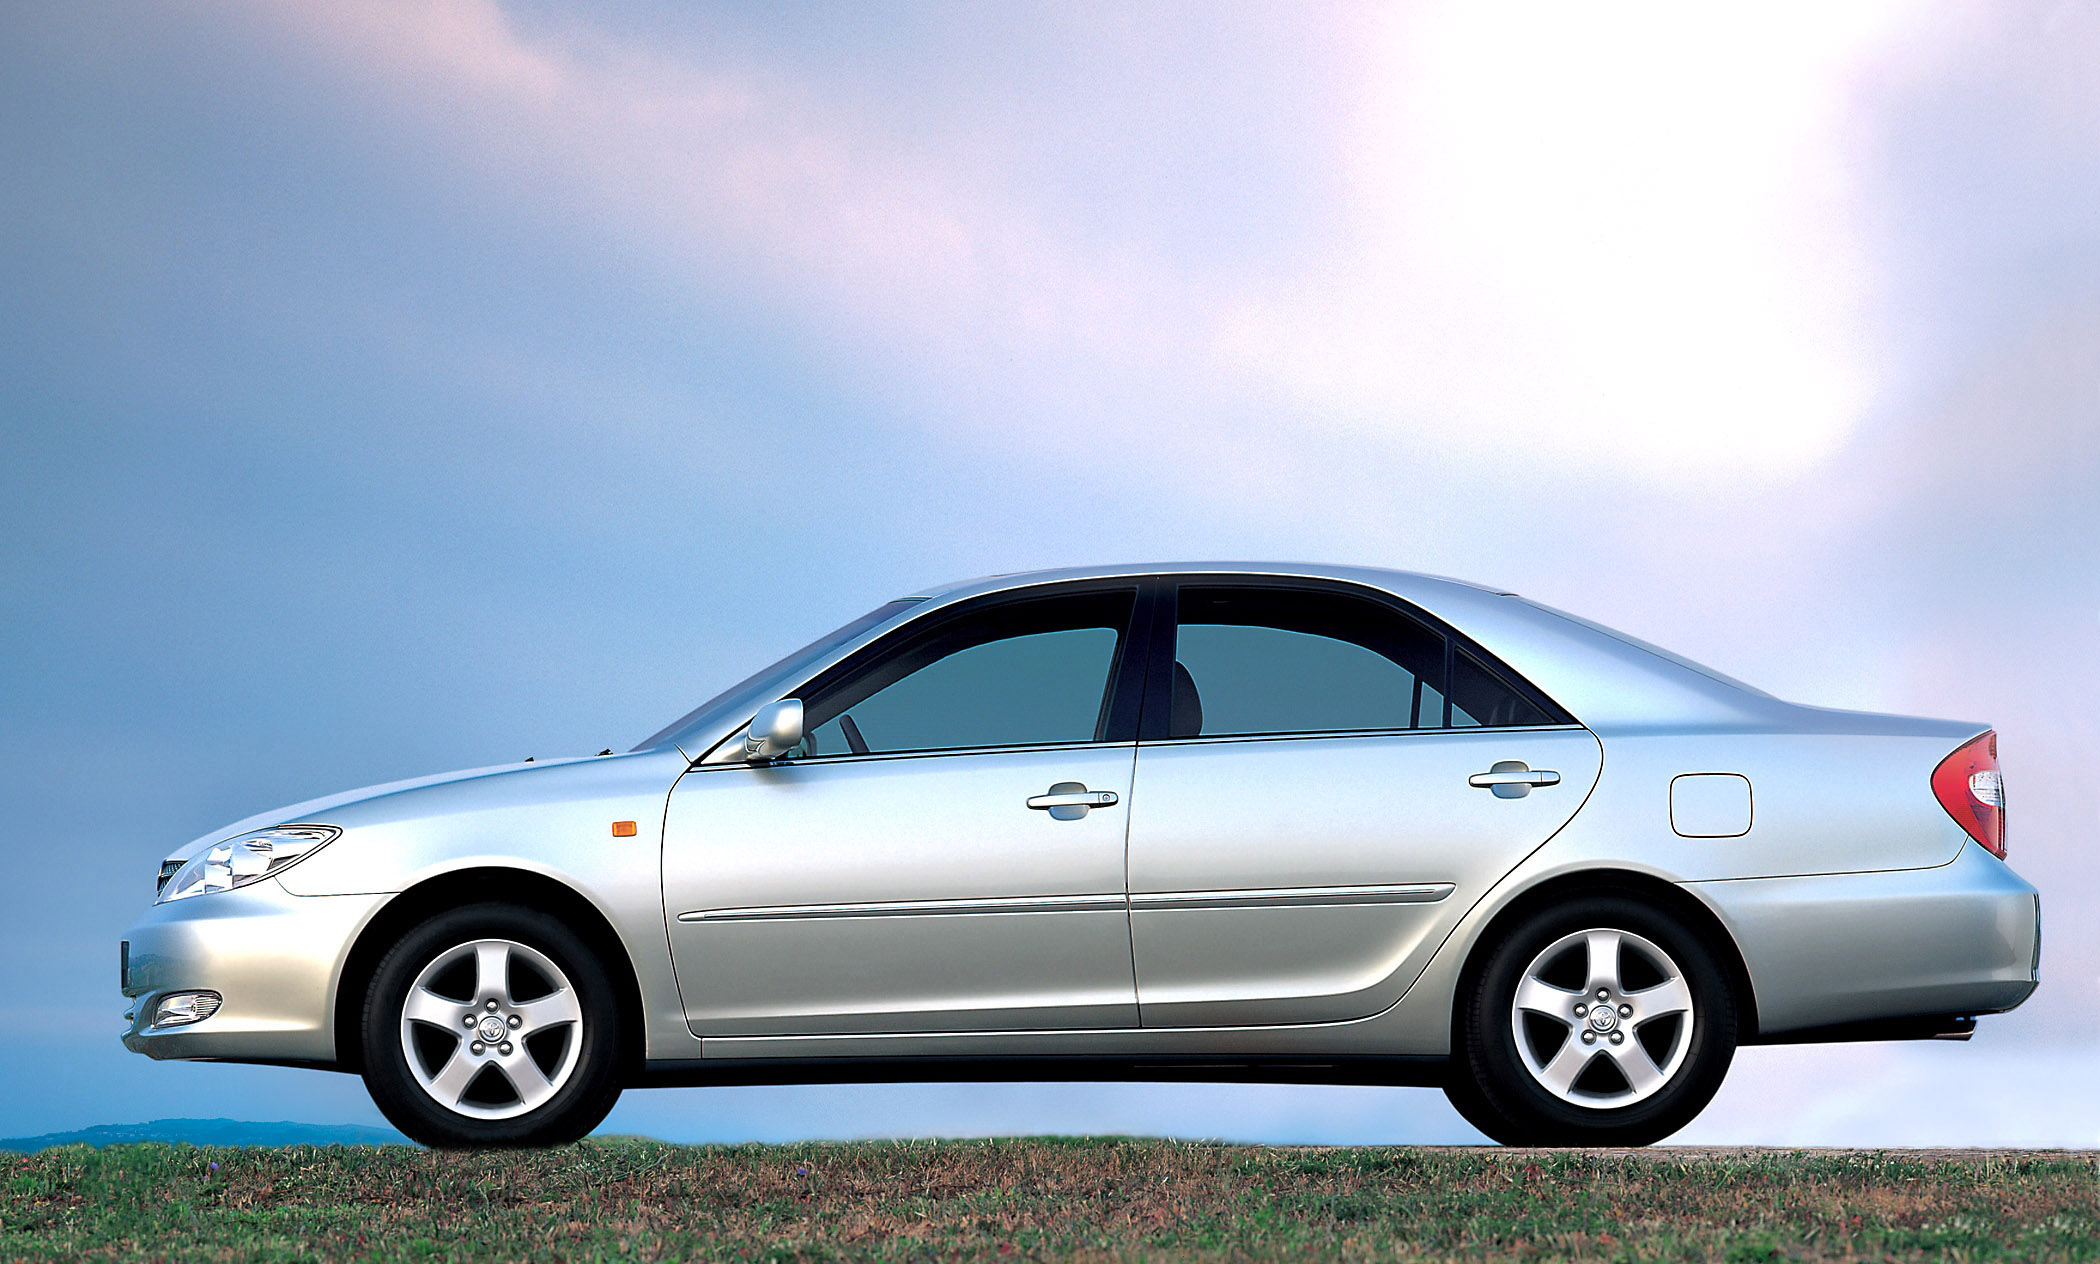 2001 Toyota Camry Picture 76899